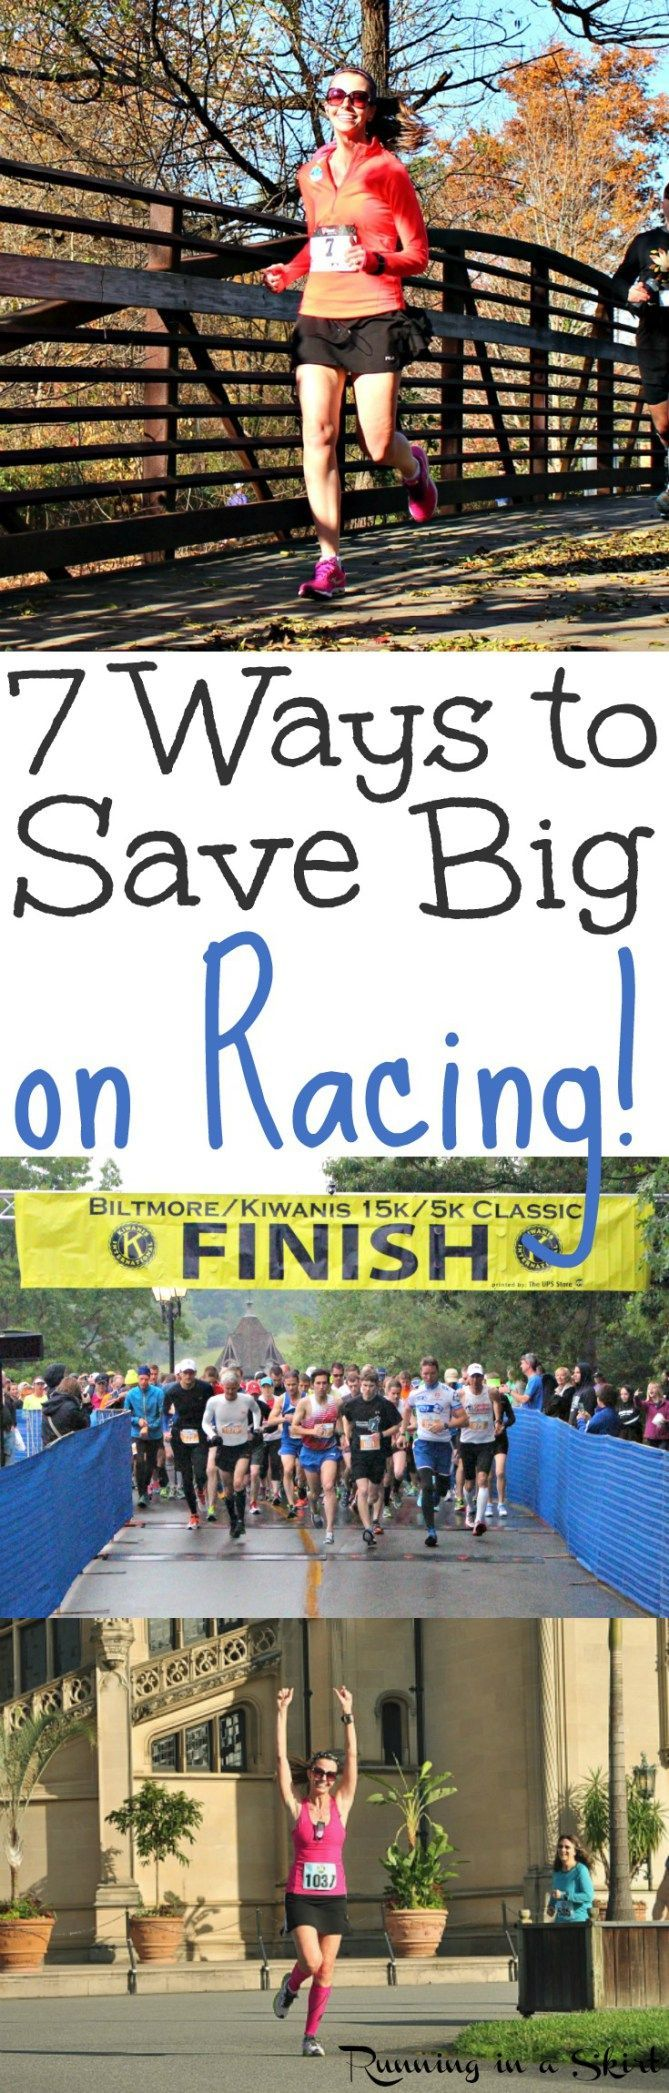 7 Ways to Save Big on Racing! Running tips and tricks to save on your next race registration, shoes and gear.  Great motivation for runners to pay less for a marathon, half marathon (13.1), 10k or for 5k.,,. or even the Color Run!  For beginners or advanced.  Start paying less to race today! / Running in a Skirt